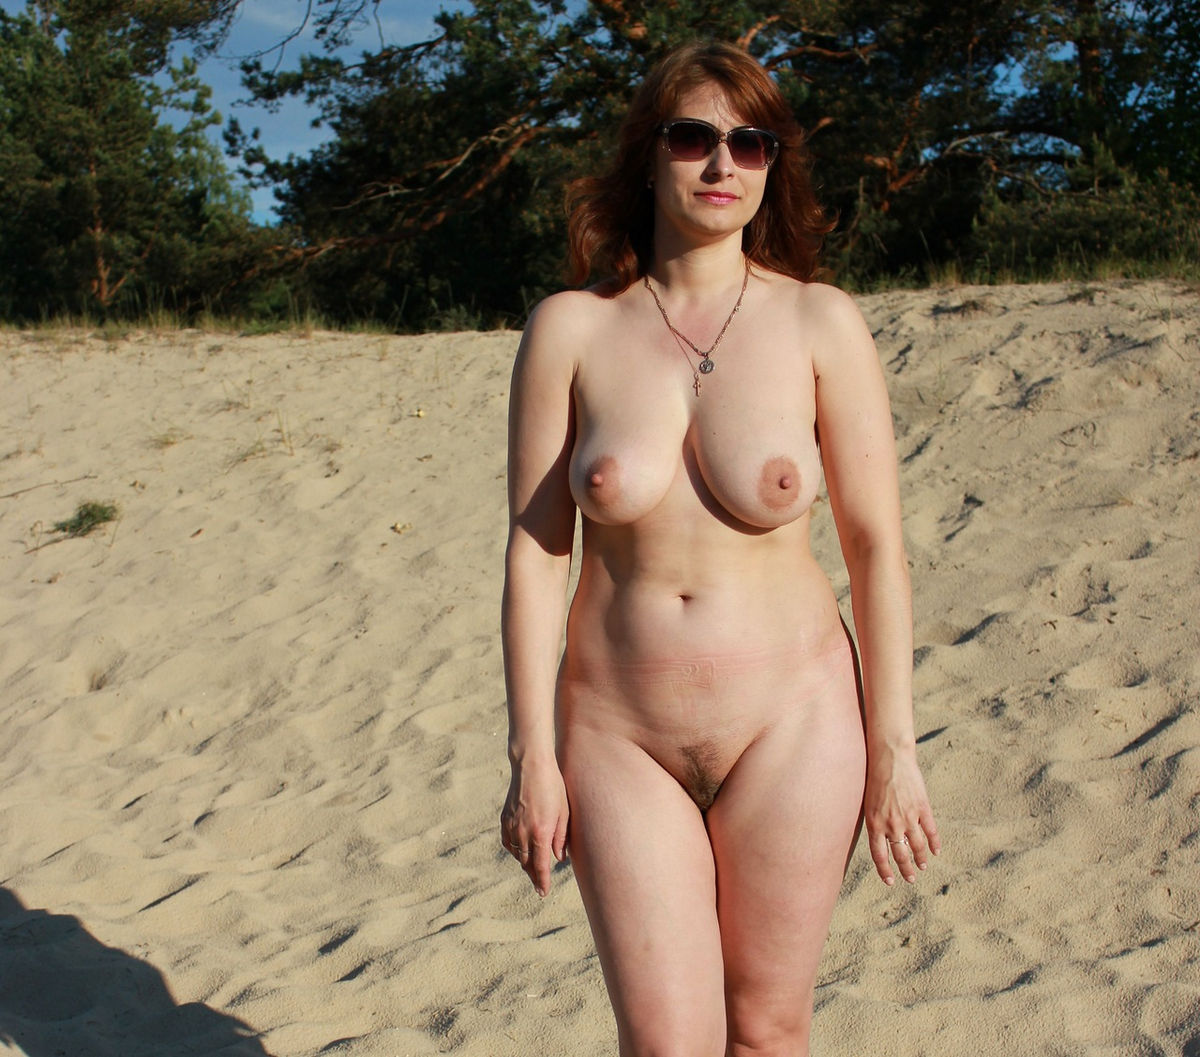 chunky women nude on beach